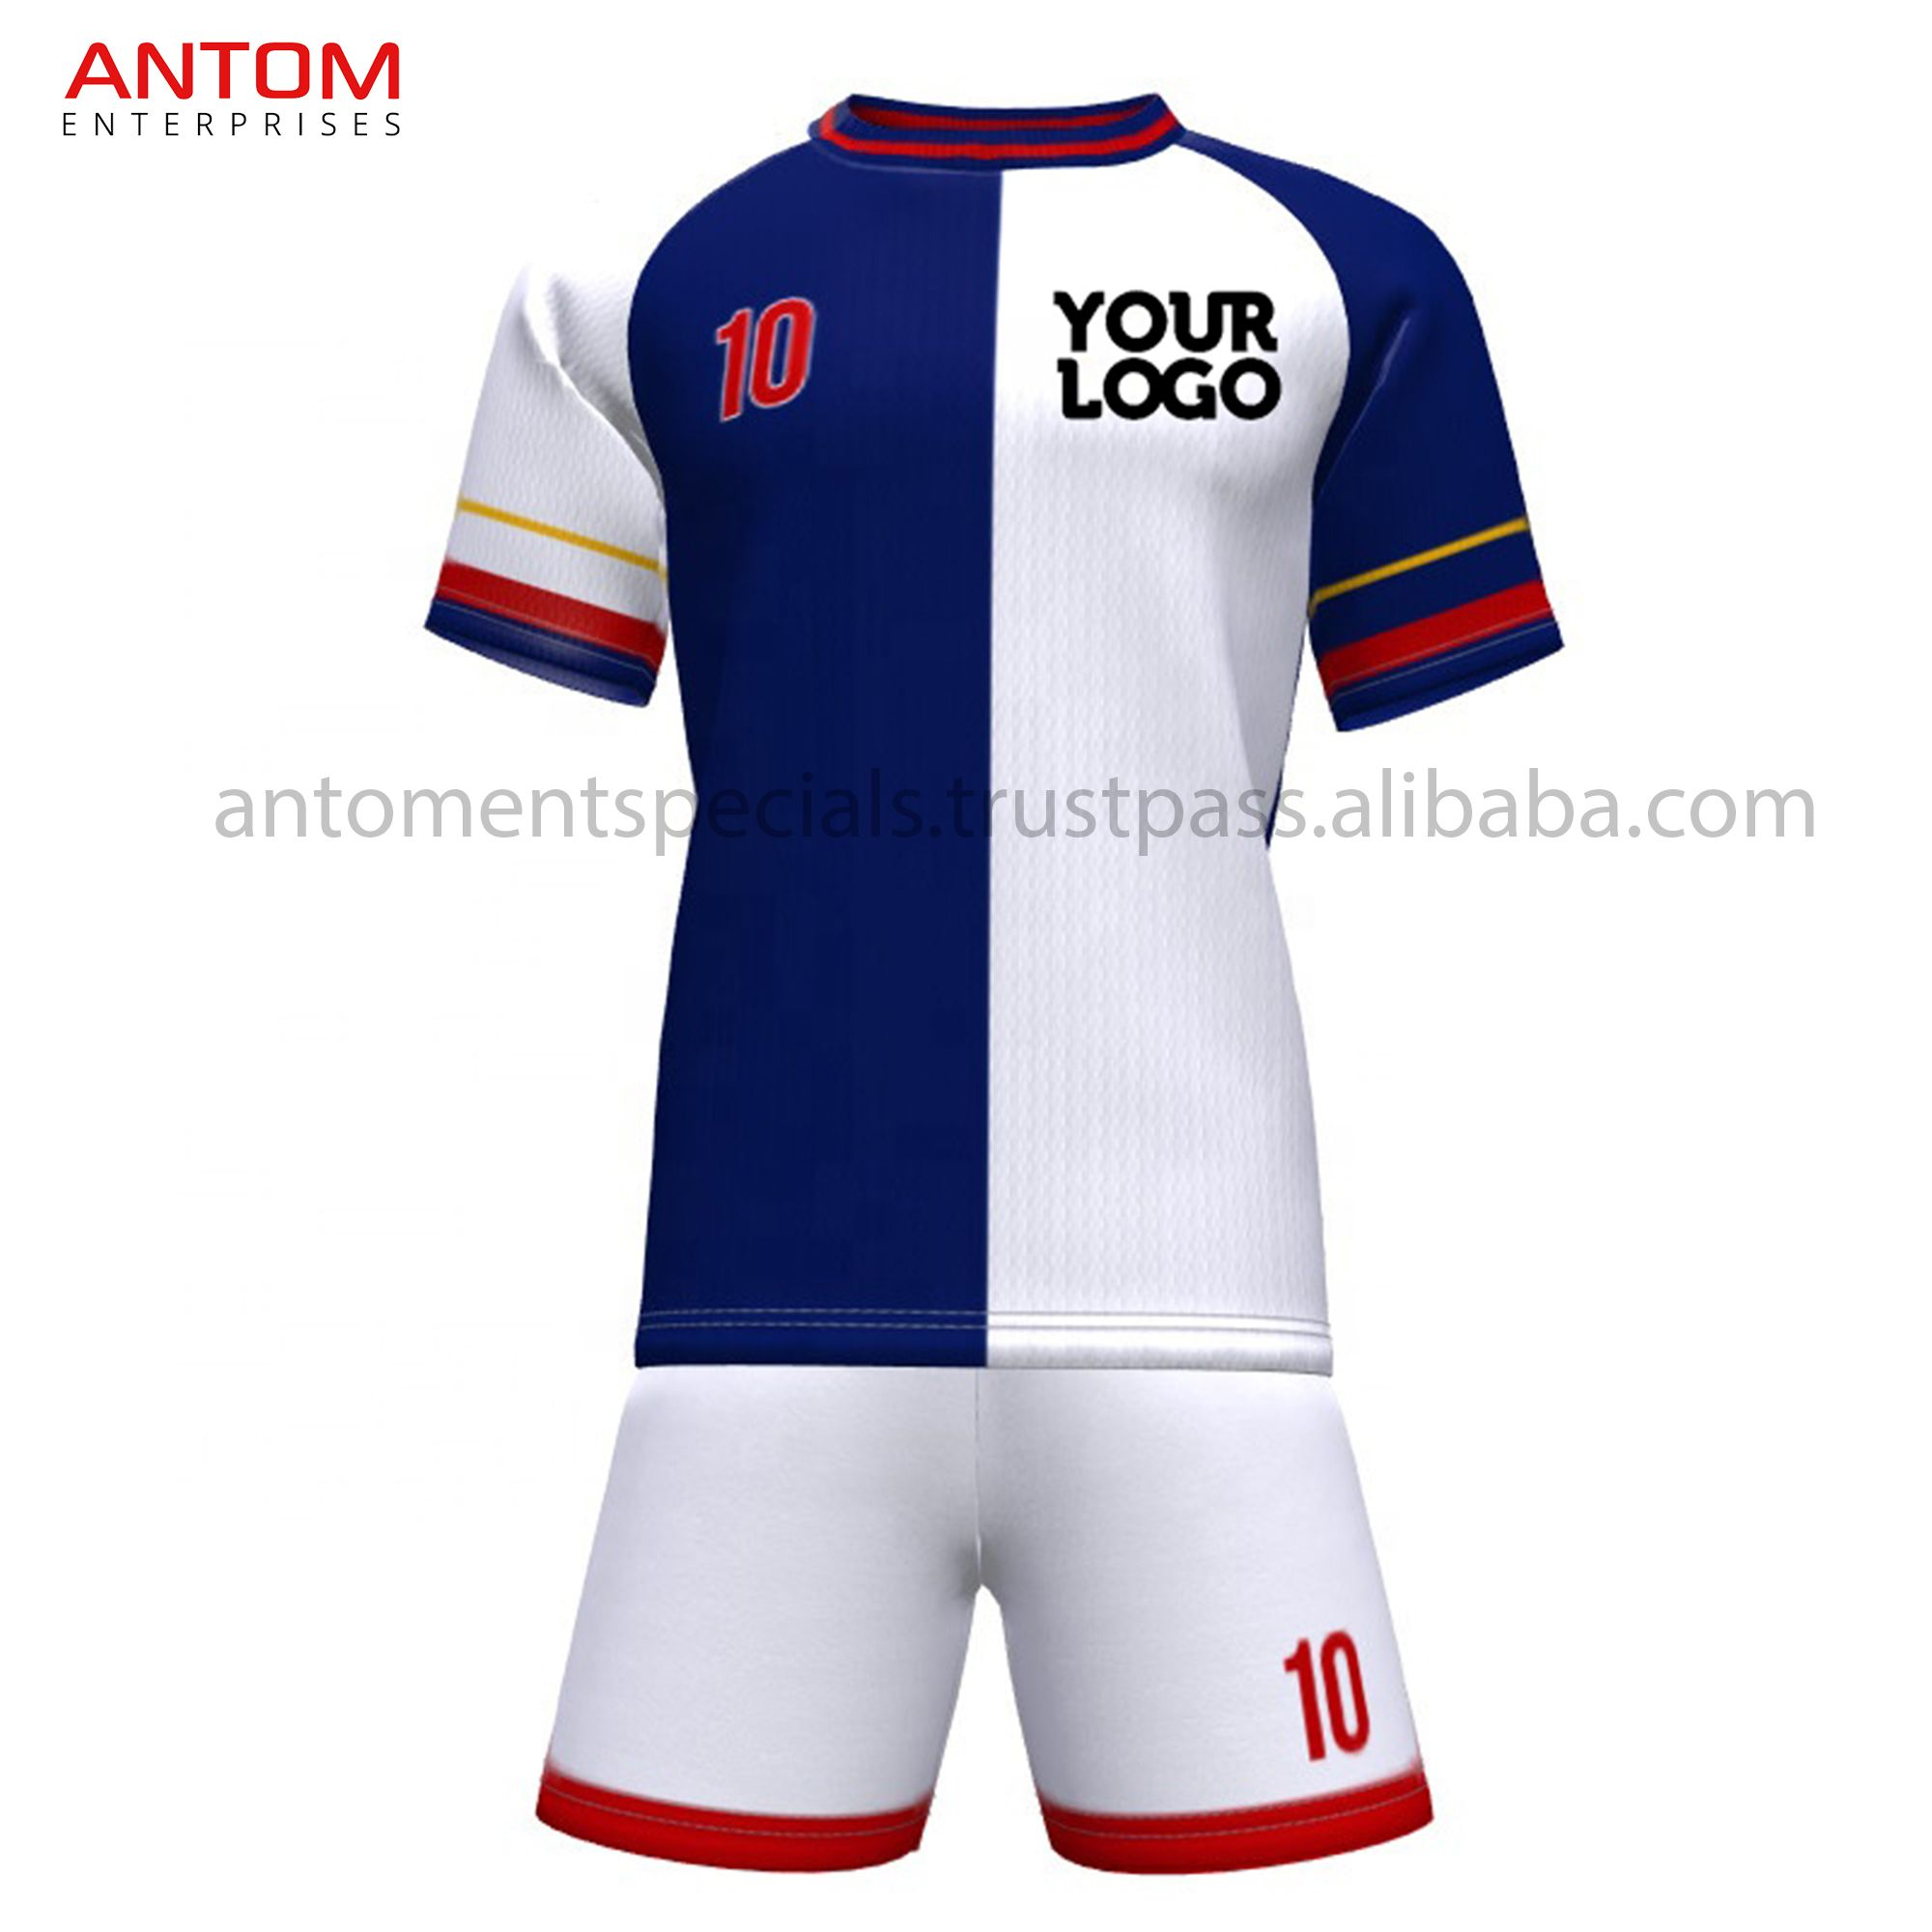 ... Soccer Uniforms by Antom Enterprises. Visit 059d184f3